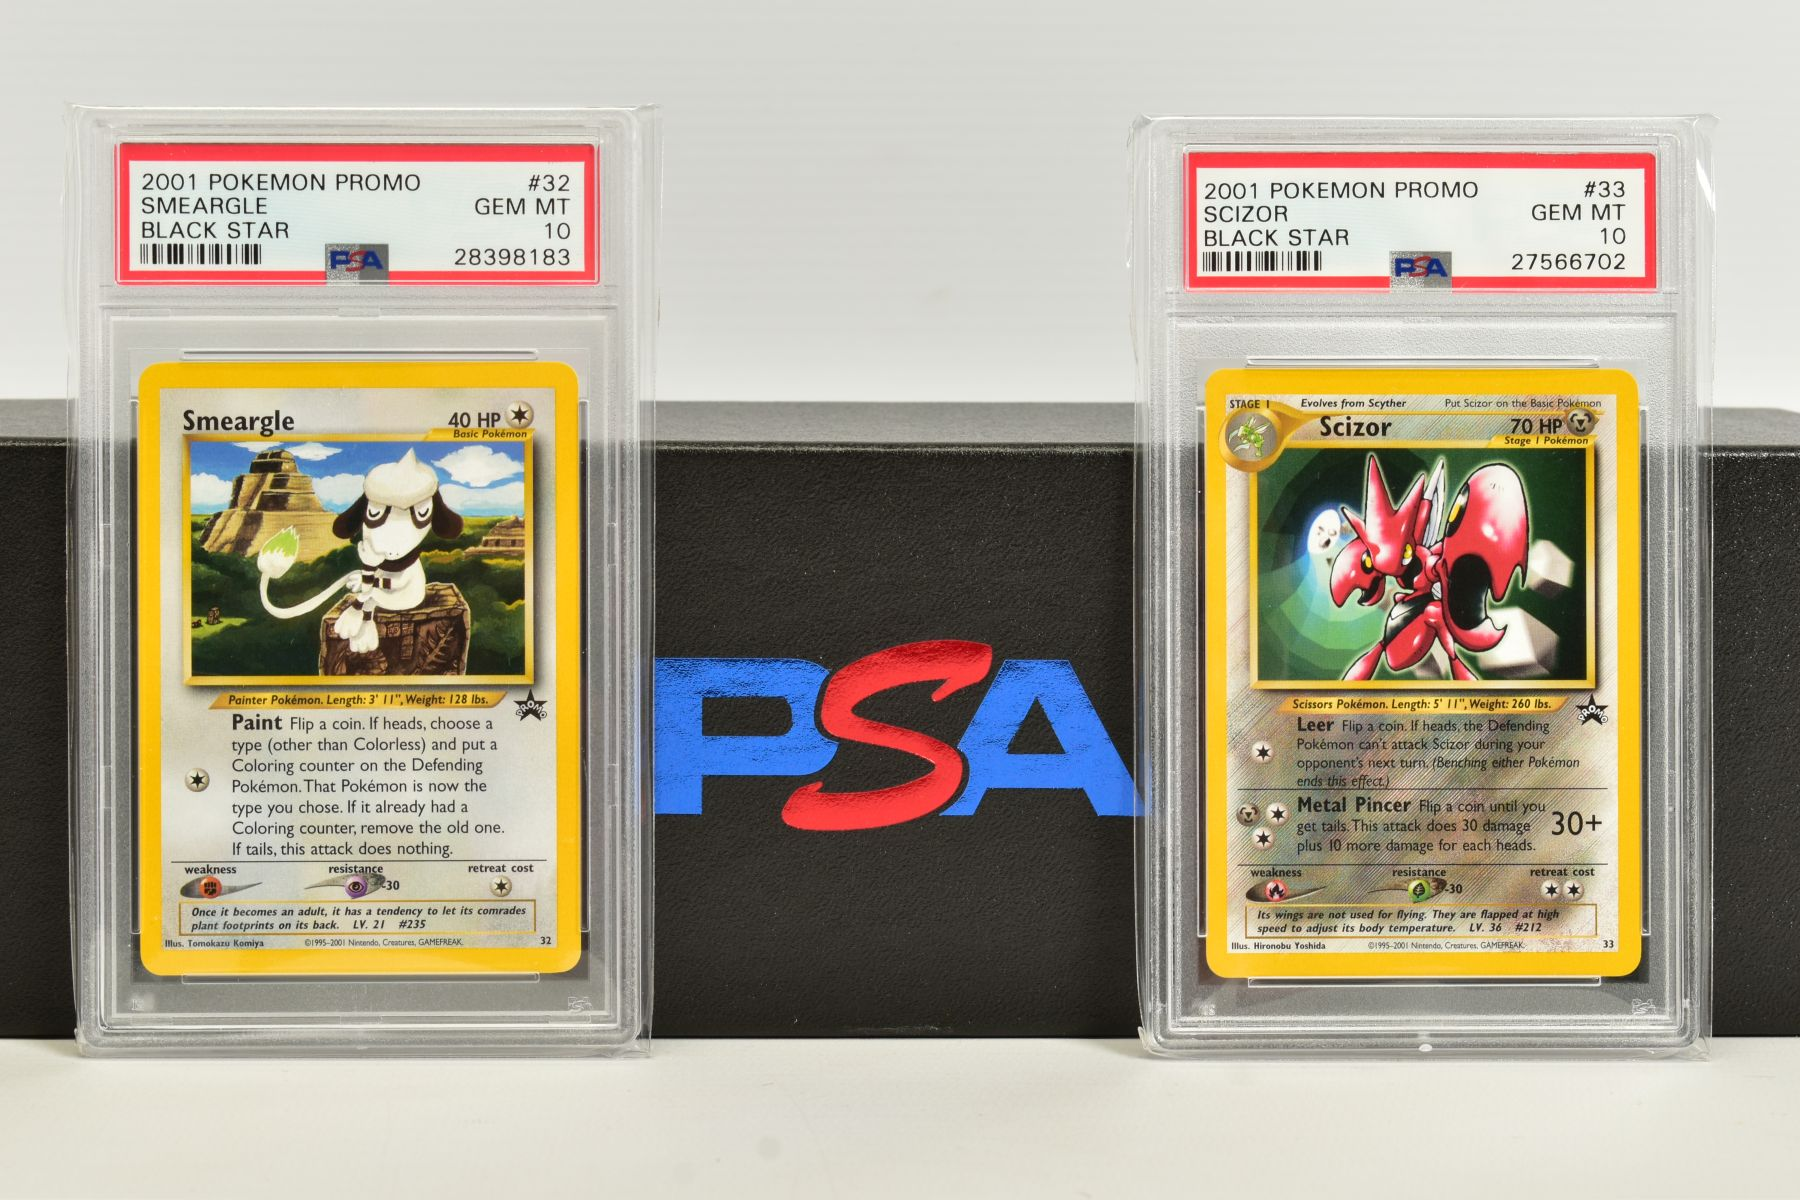 A QUANTITY OF PSA GRADED WIZARDS OF THE COAST POKEMON BLACK STAR PROMO CARDS, all date from 2000